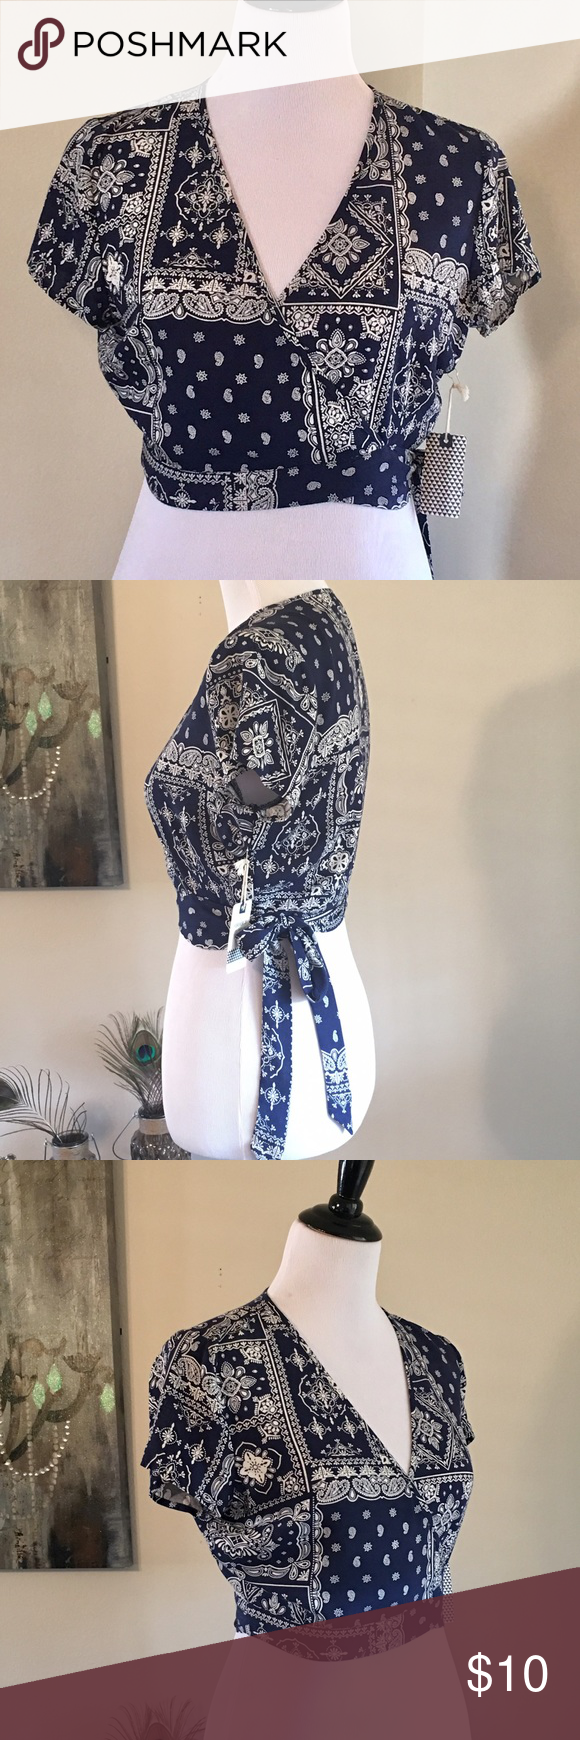 Bandana Print Wrap Around Top New with tag. Size Medium. 100% Rayon. Old school wrap around style. Love how the bow hangs down the side. Criss cross front. Classic navy bandana print Forever 21 Tops Blouses